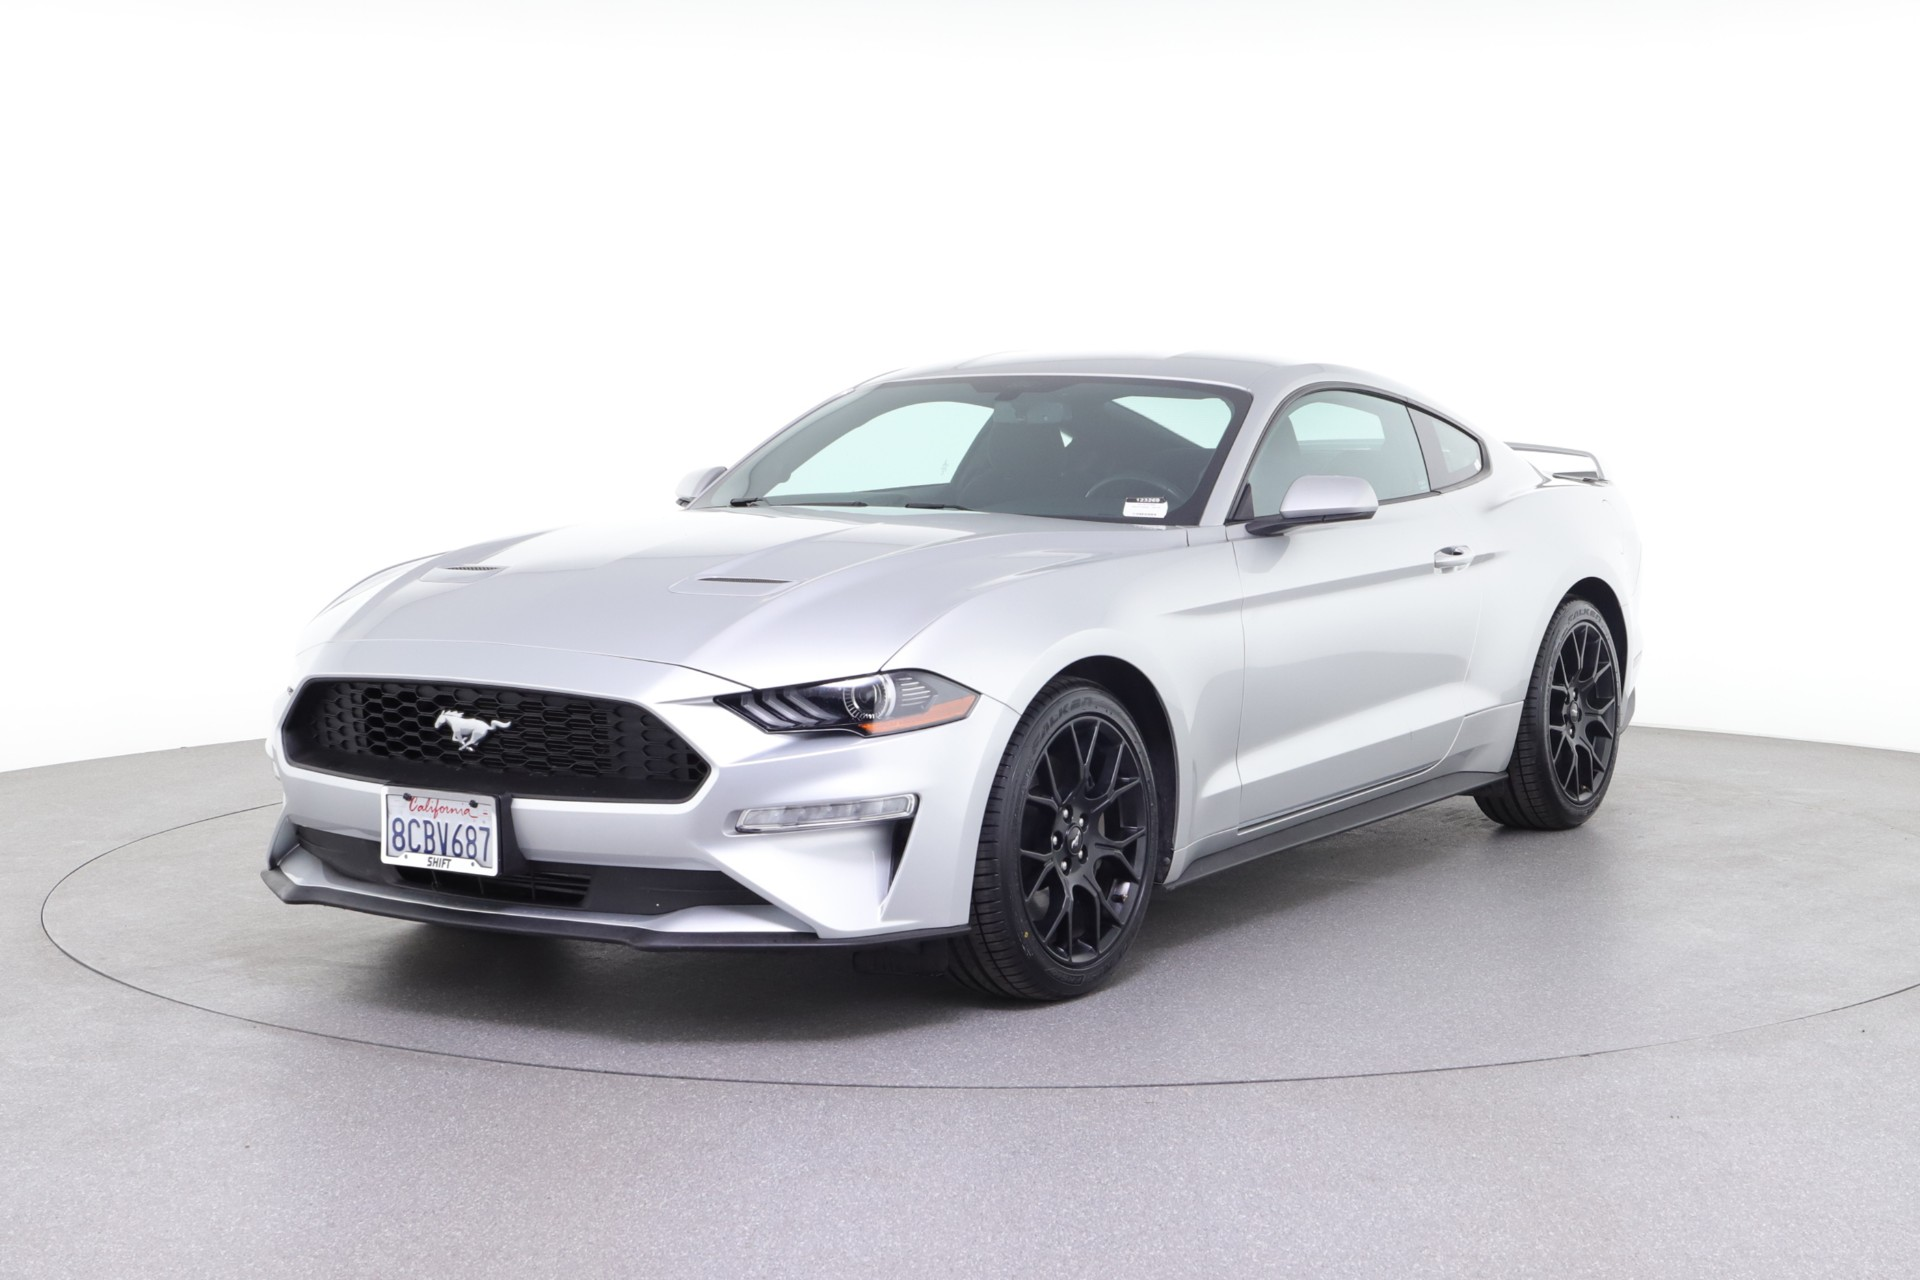 2018 Ford Mustang EcoBoost (from $27,950)